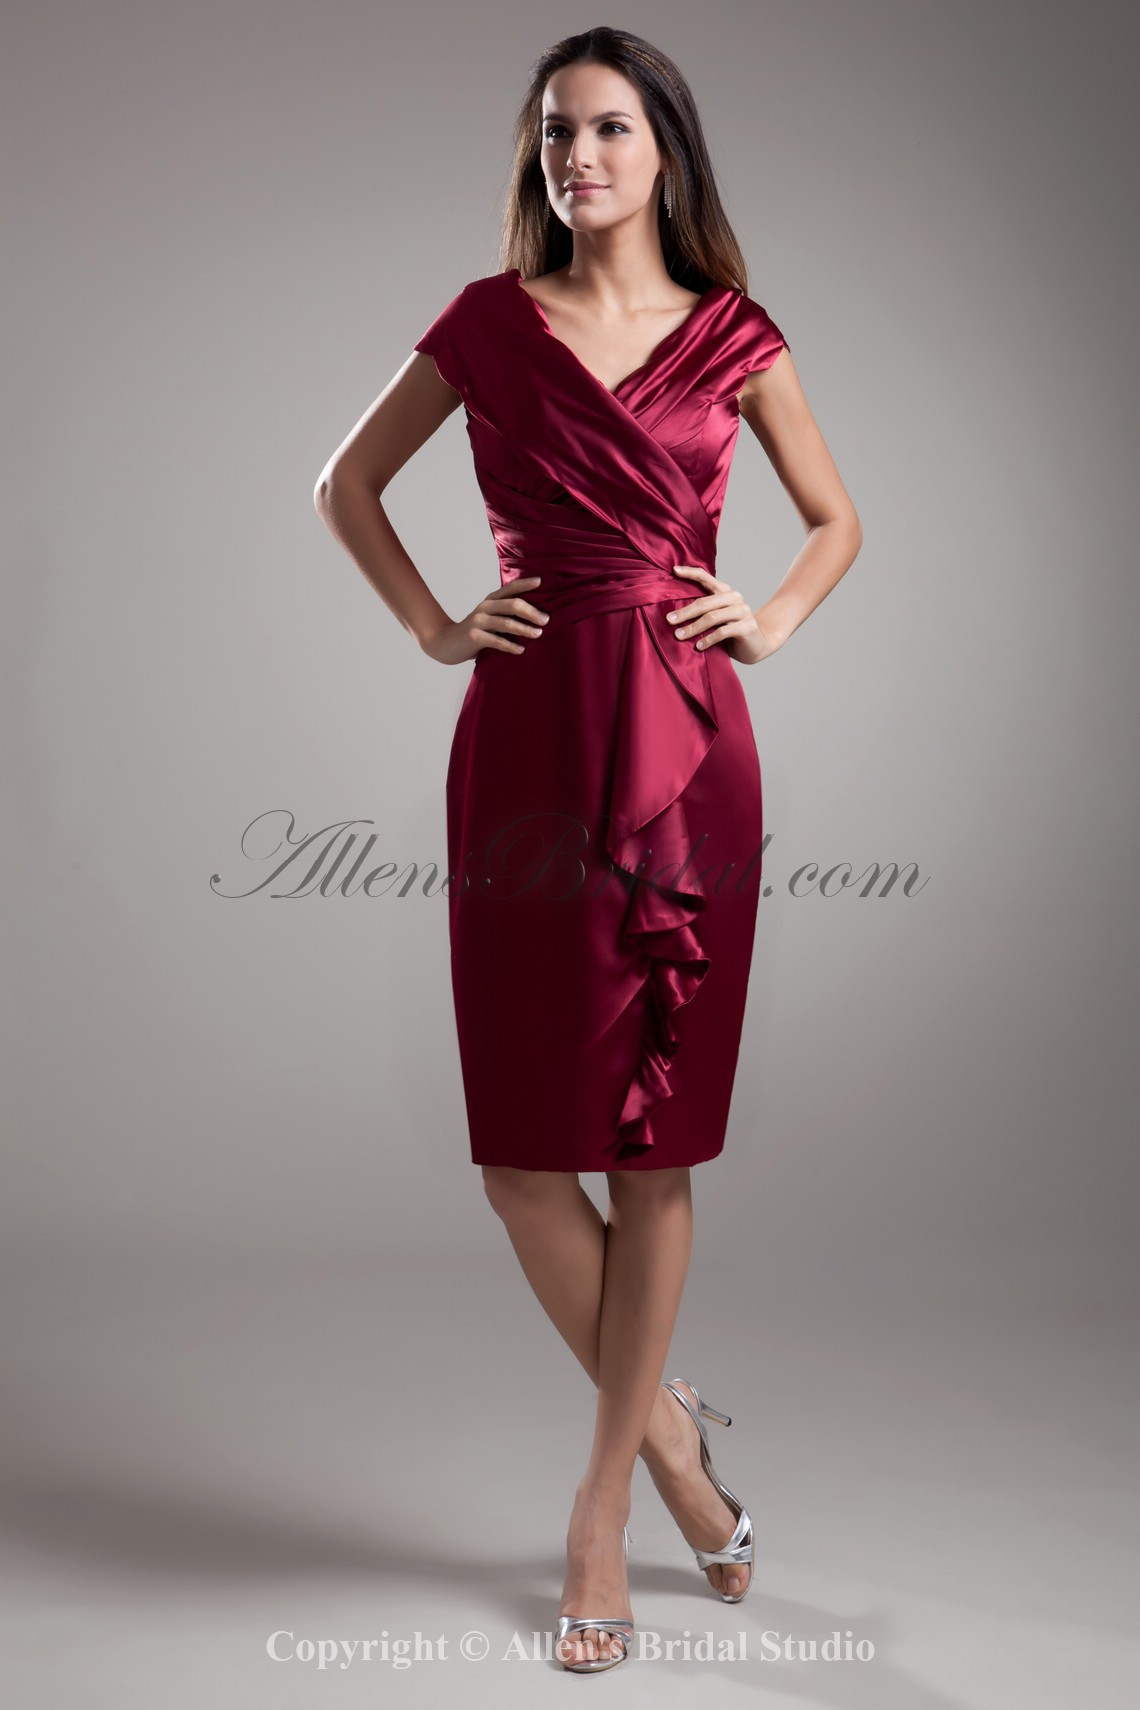 /711-5691/satin-v-neck-neckline-knee-length-sheath-cap-sleeves-cocktail-dress.jpg